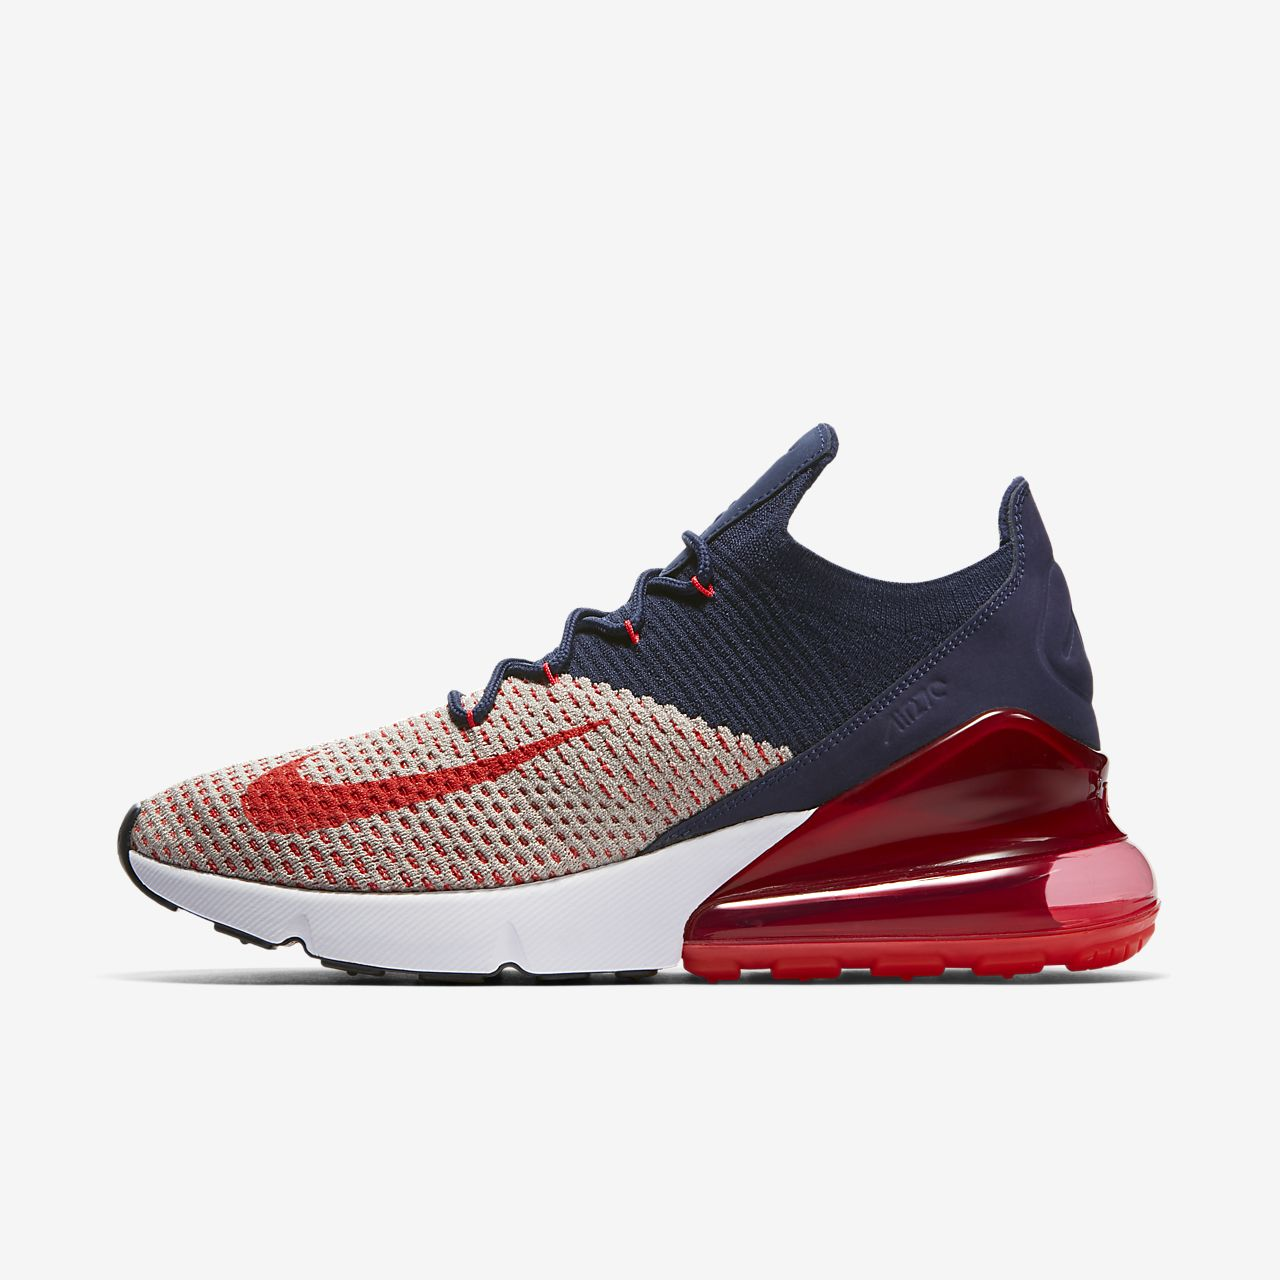 73c676e7c326 ... where to buy nike air max 270 flyknit womens shoe eb08d 39d03